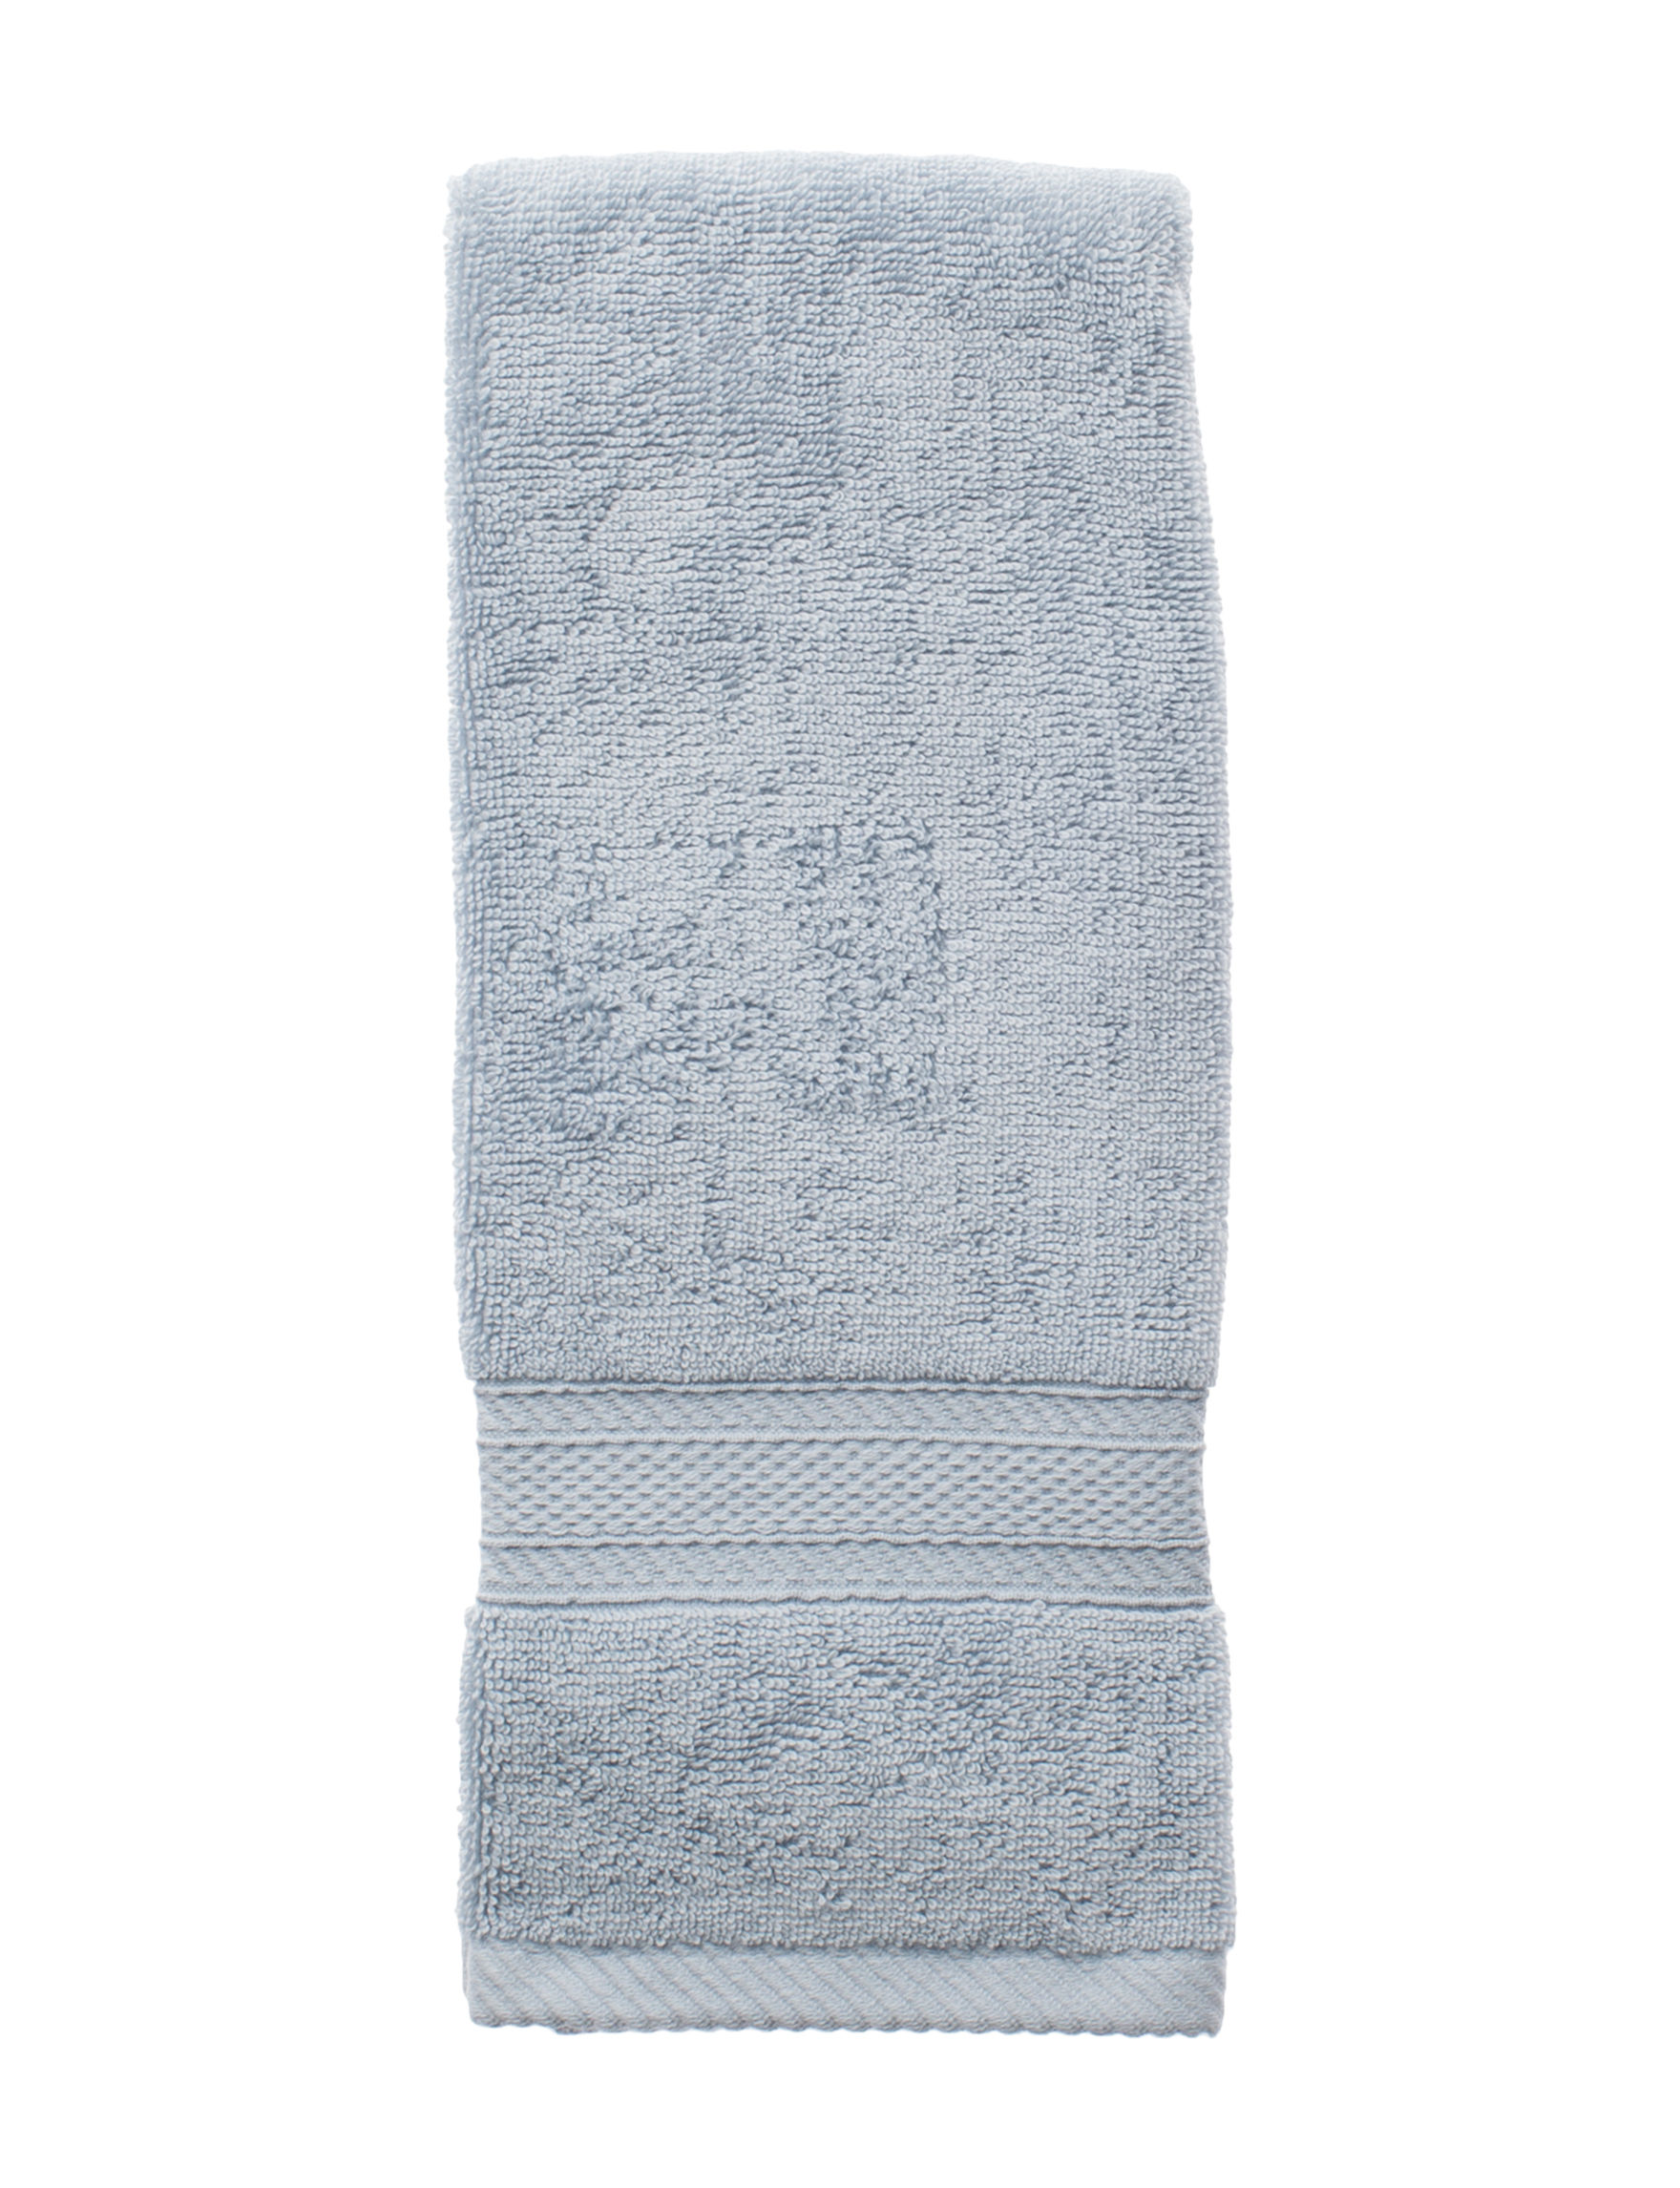 Great Hotels Collection Blue Hand Towels Towels